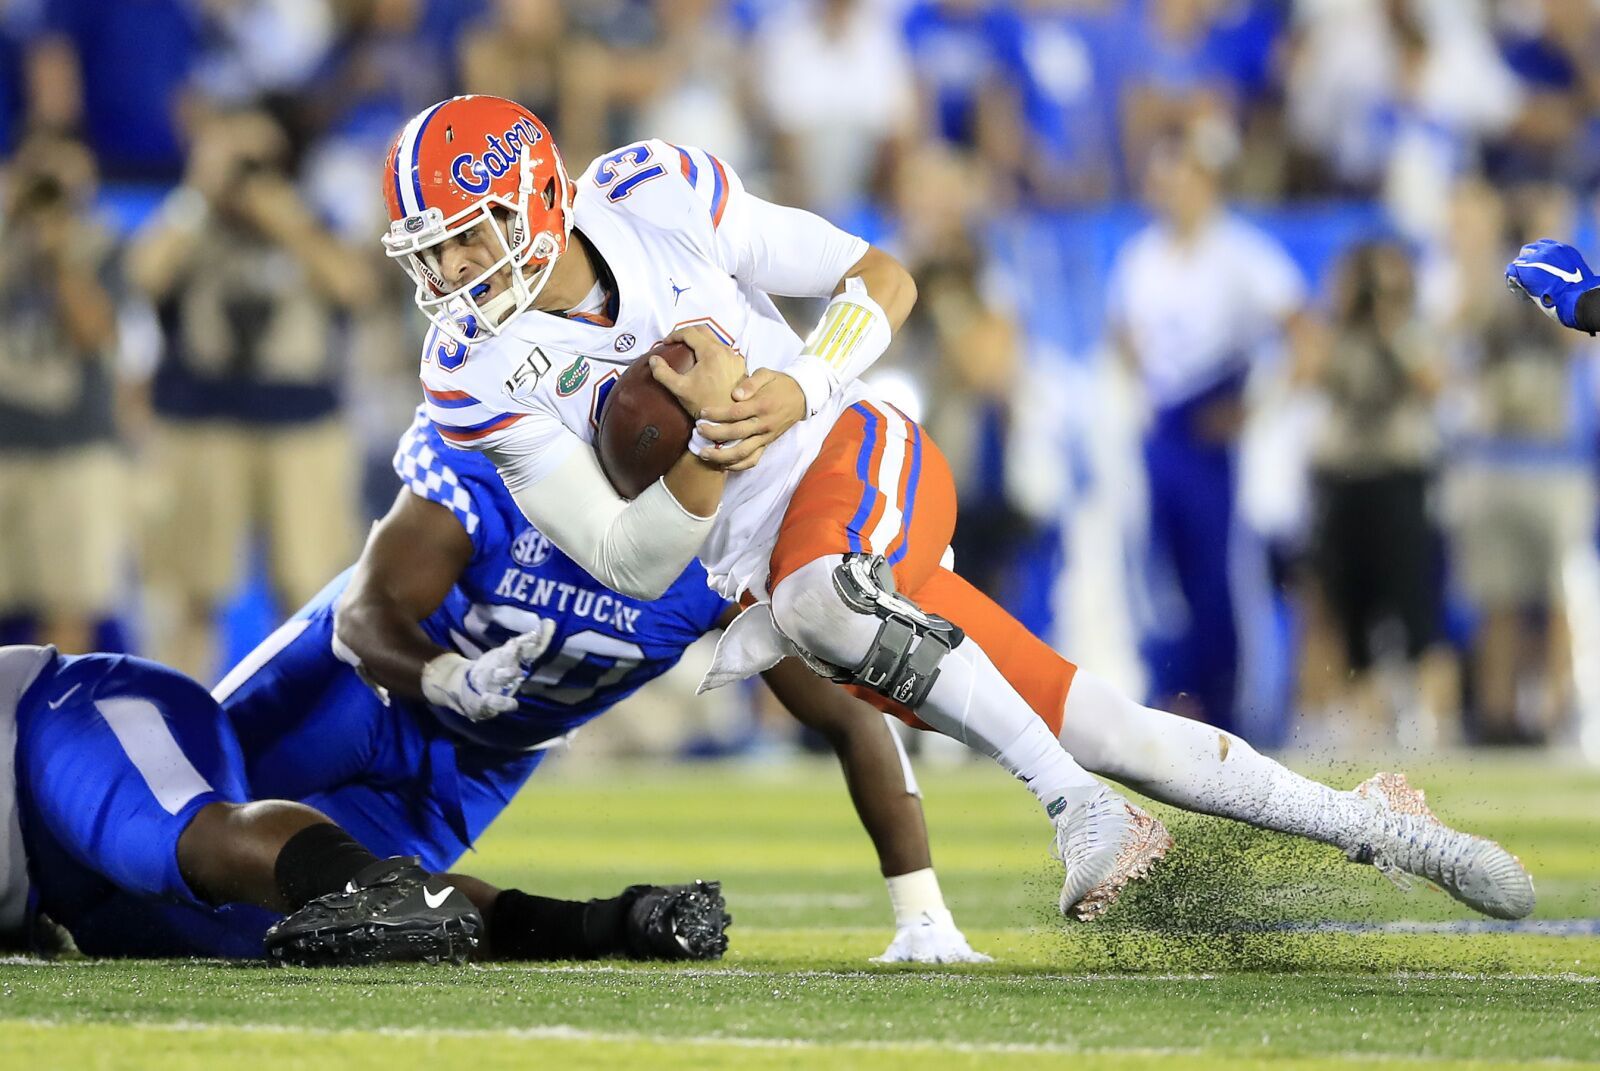 Florida Football: 3 keys to victory over Tennessee in Week 4